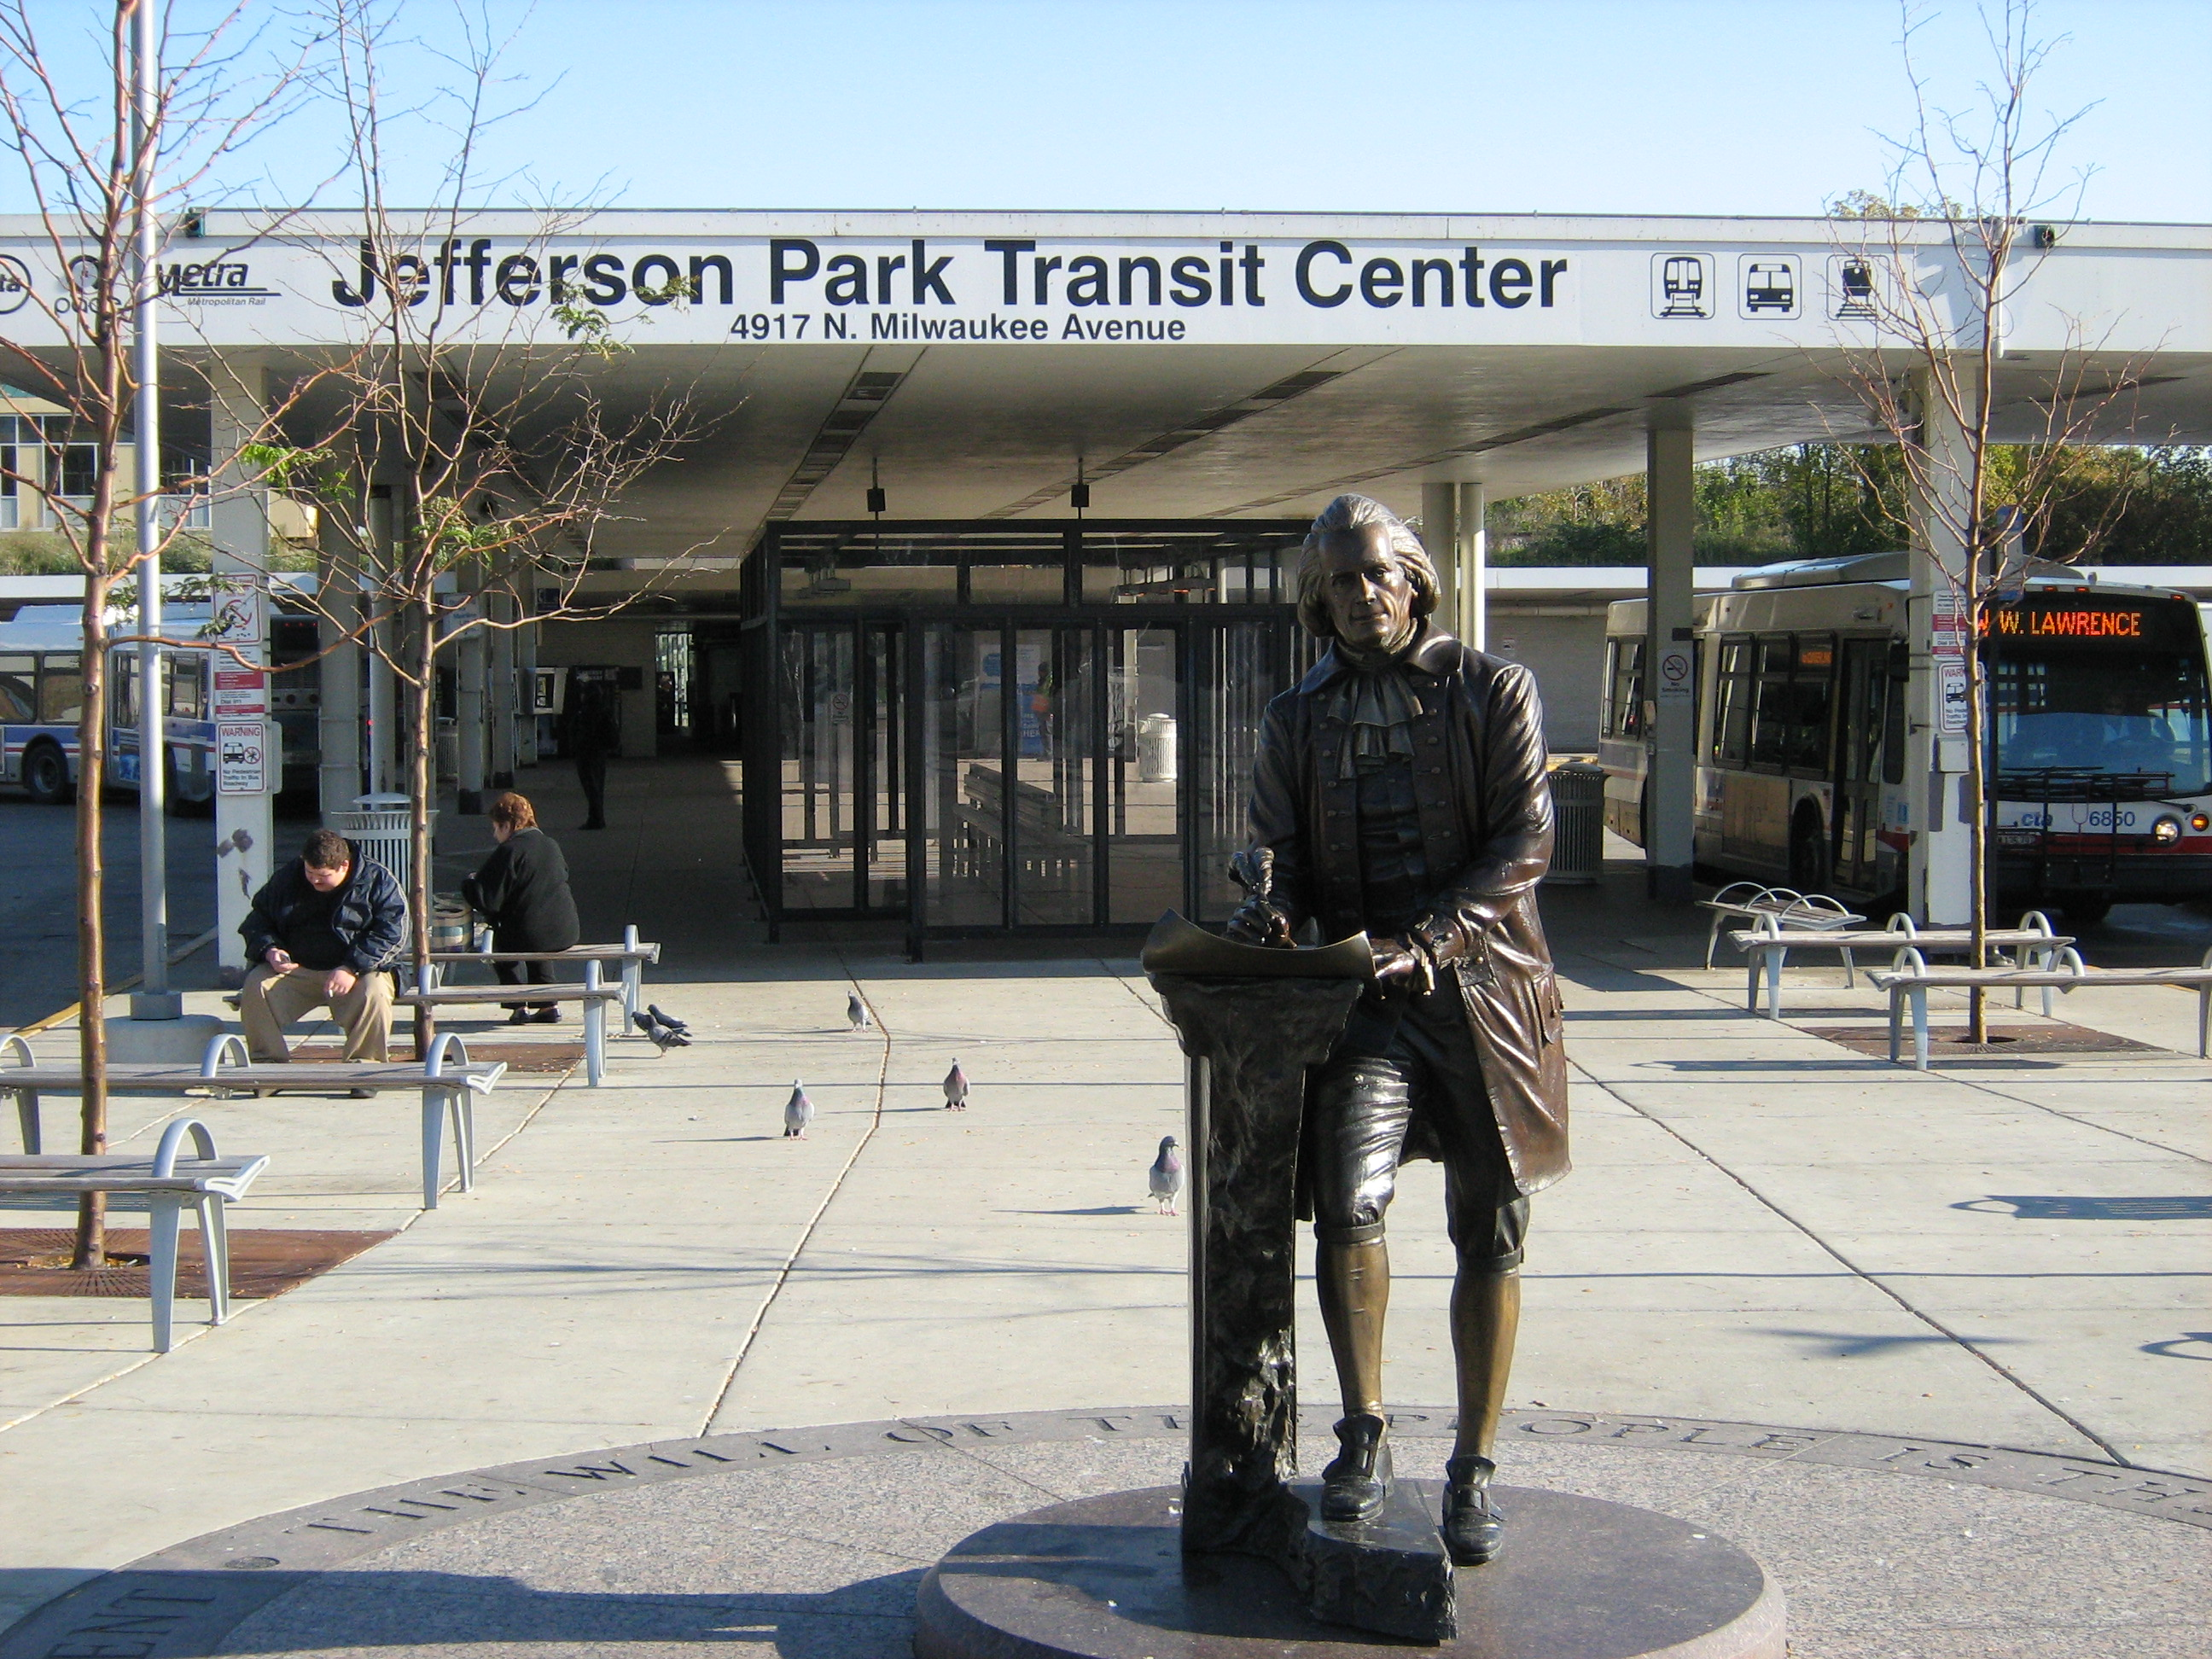 Monument of Thomas Jefferson in front of the Jefferson Park Transit Center